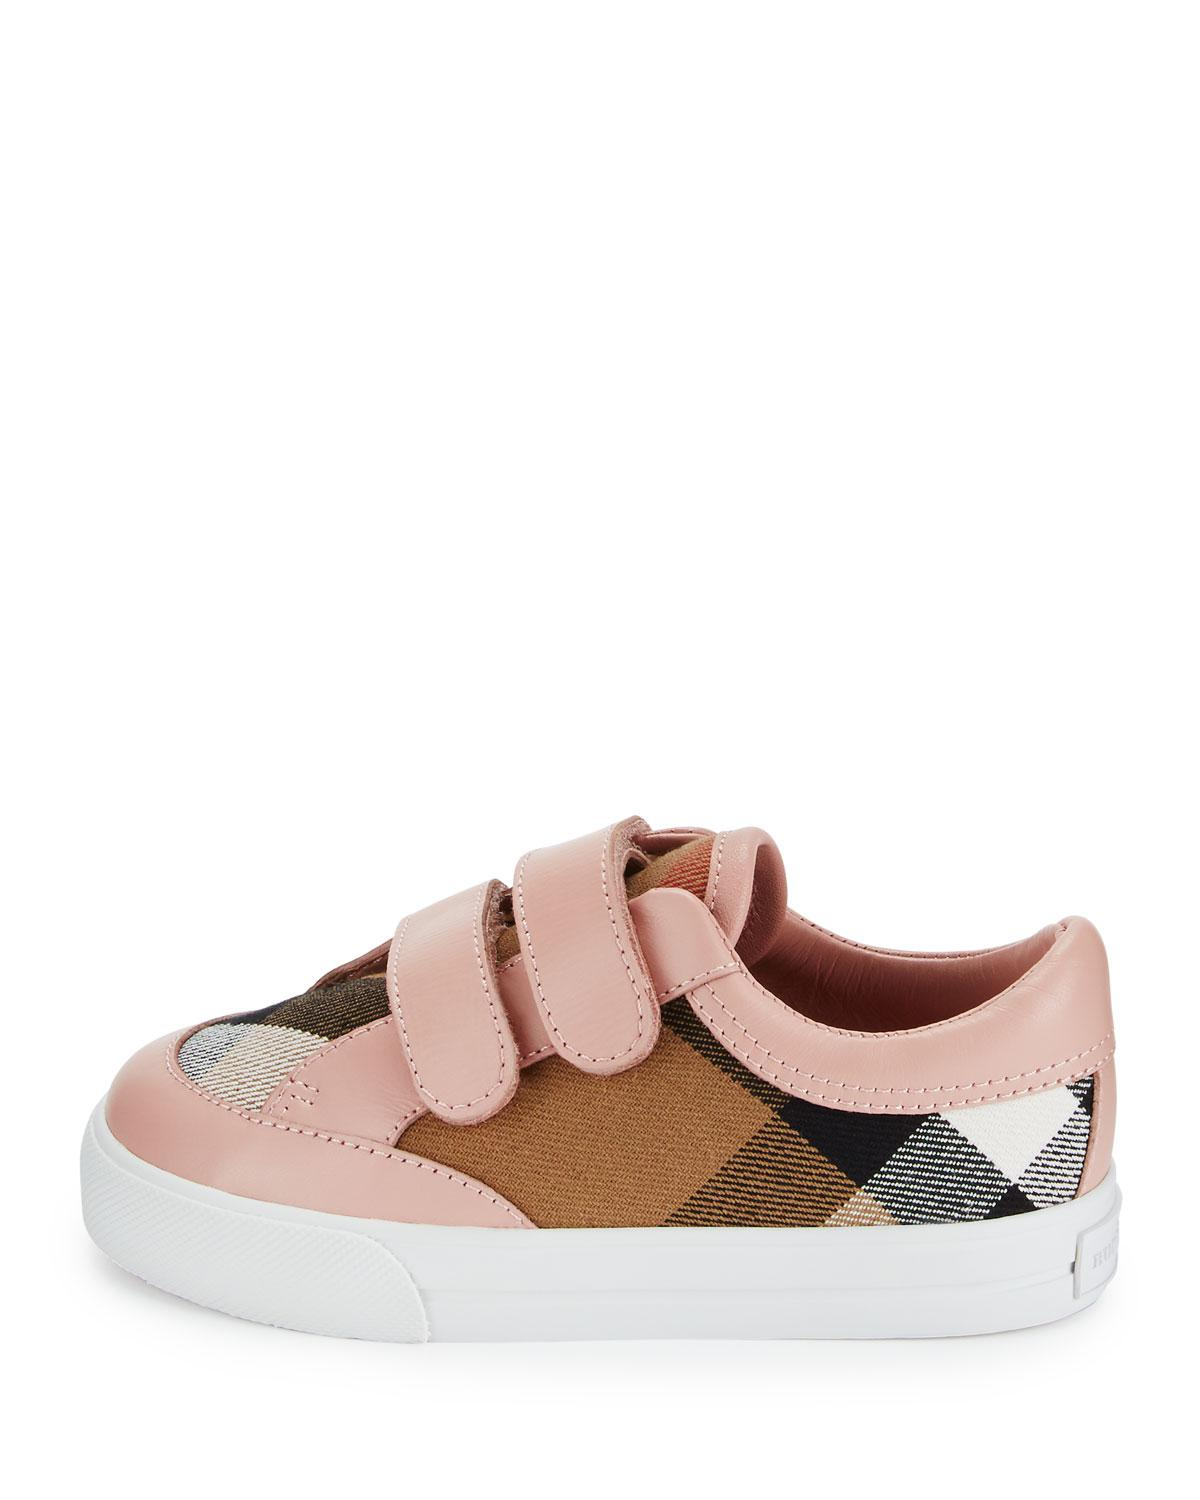 af5df77074c6 Lyst - Burberry Heacham Check Canvas Sneaker in Pink